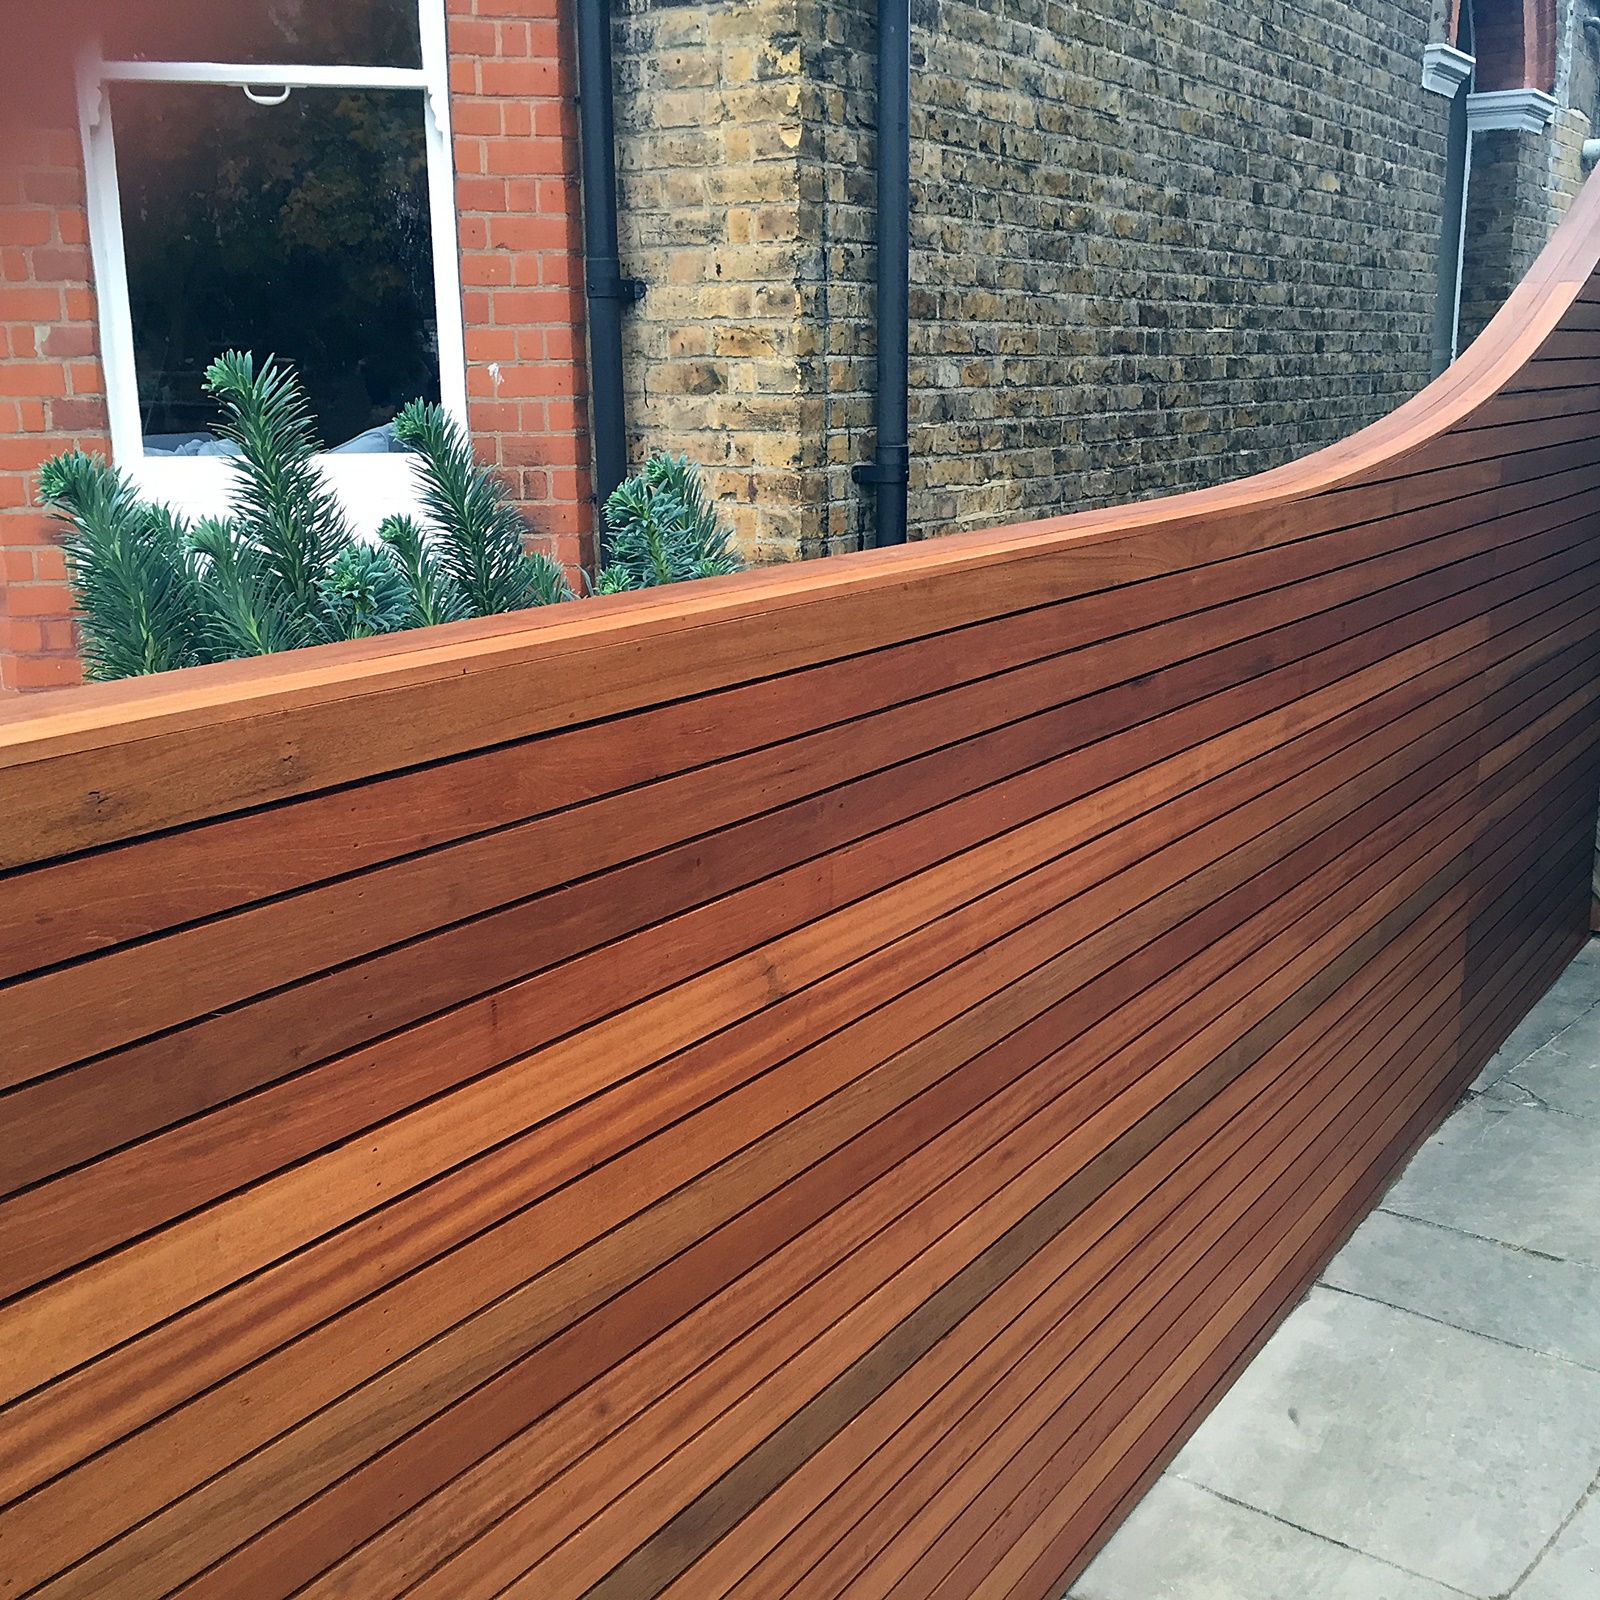 cedar screen fence trellis slatted horizontal strip hardwood oiled fence clapham fulham battersea dulwich chelsea balham london